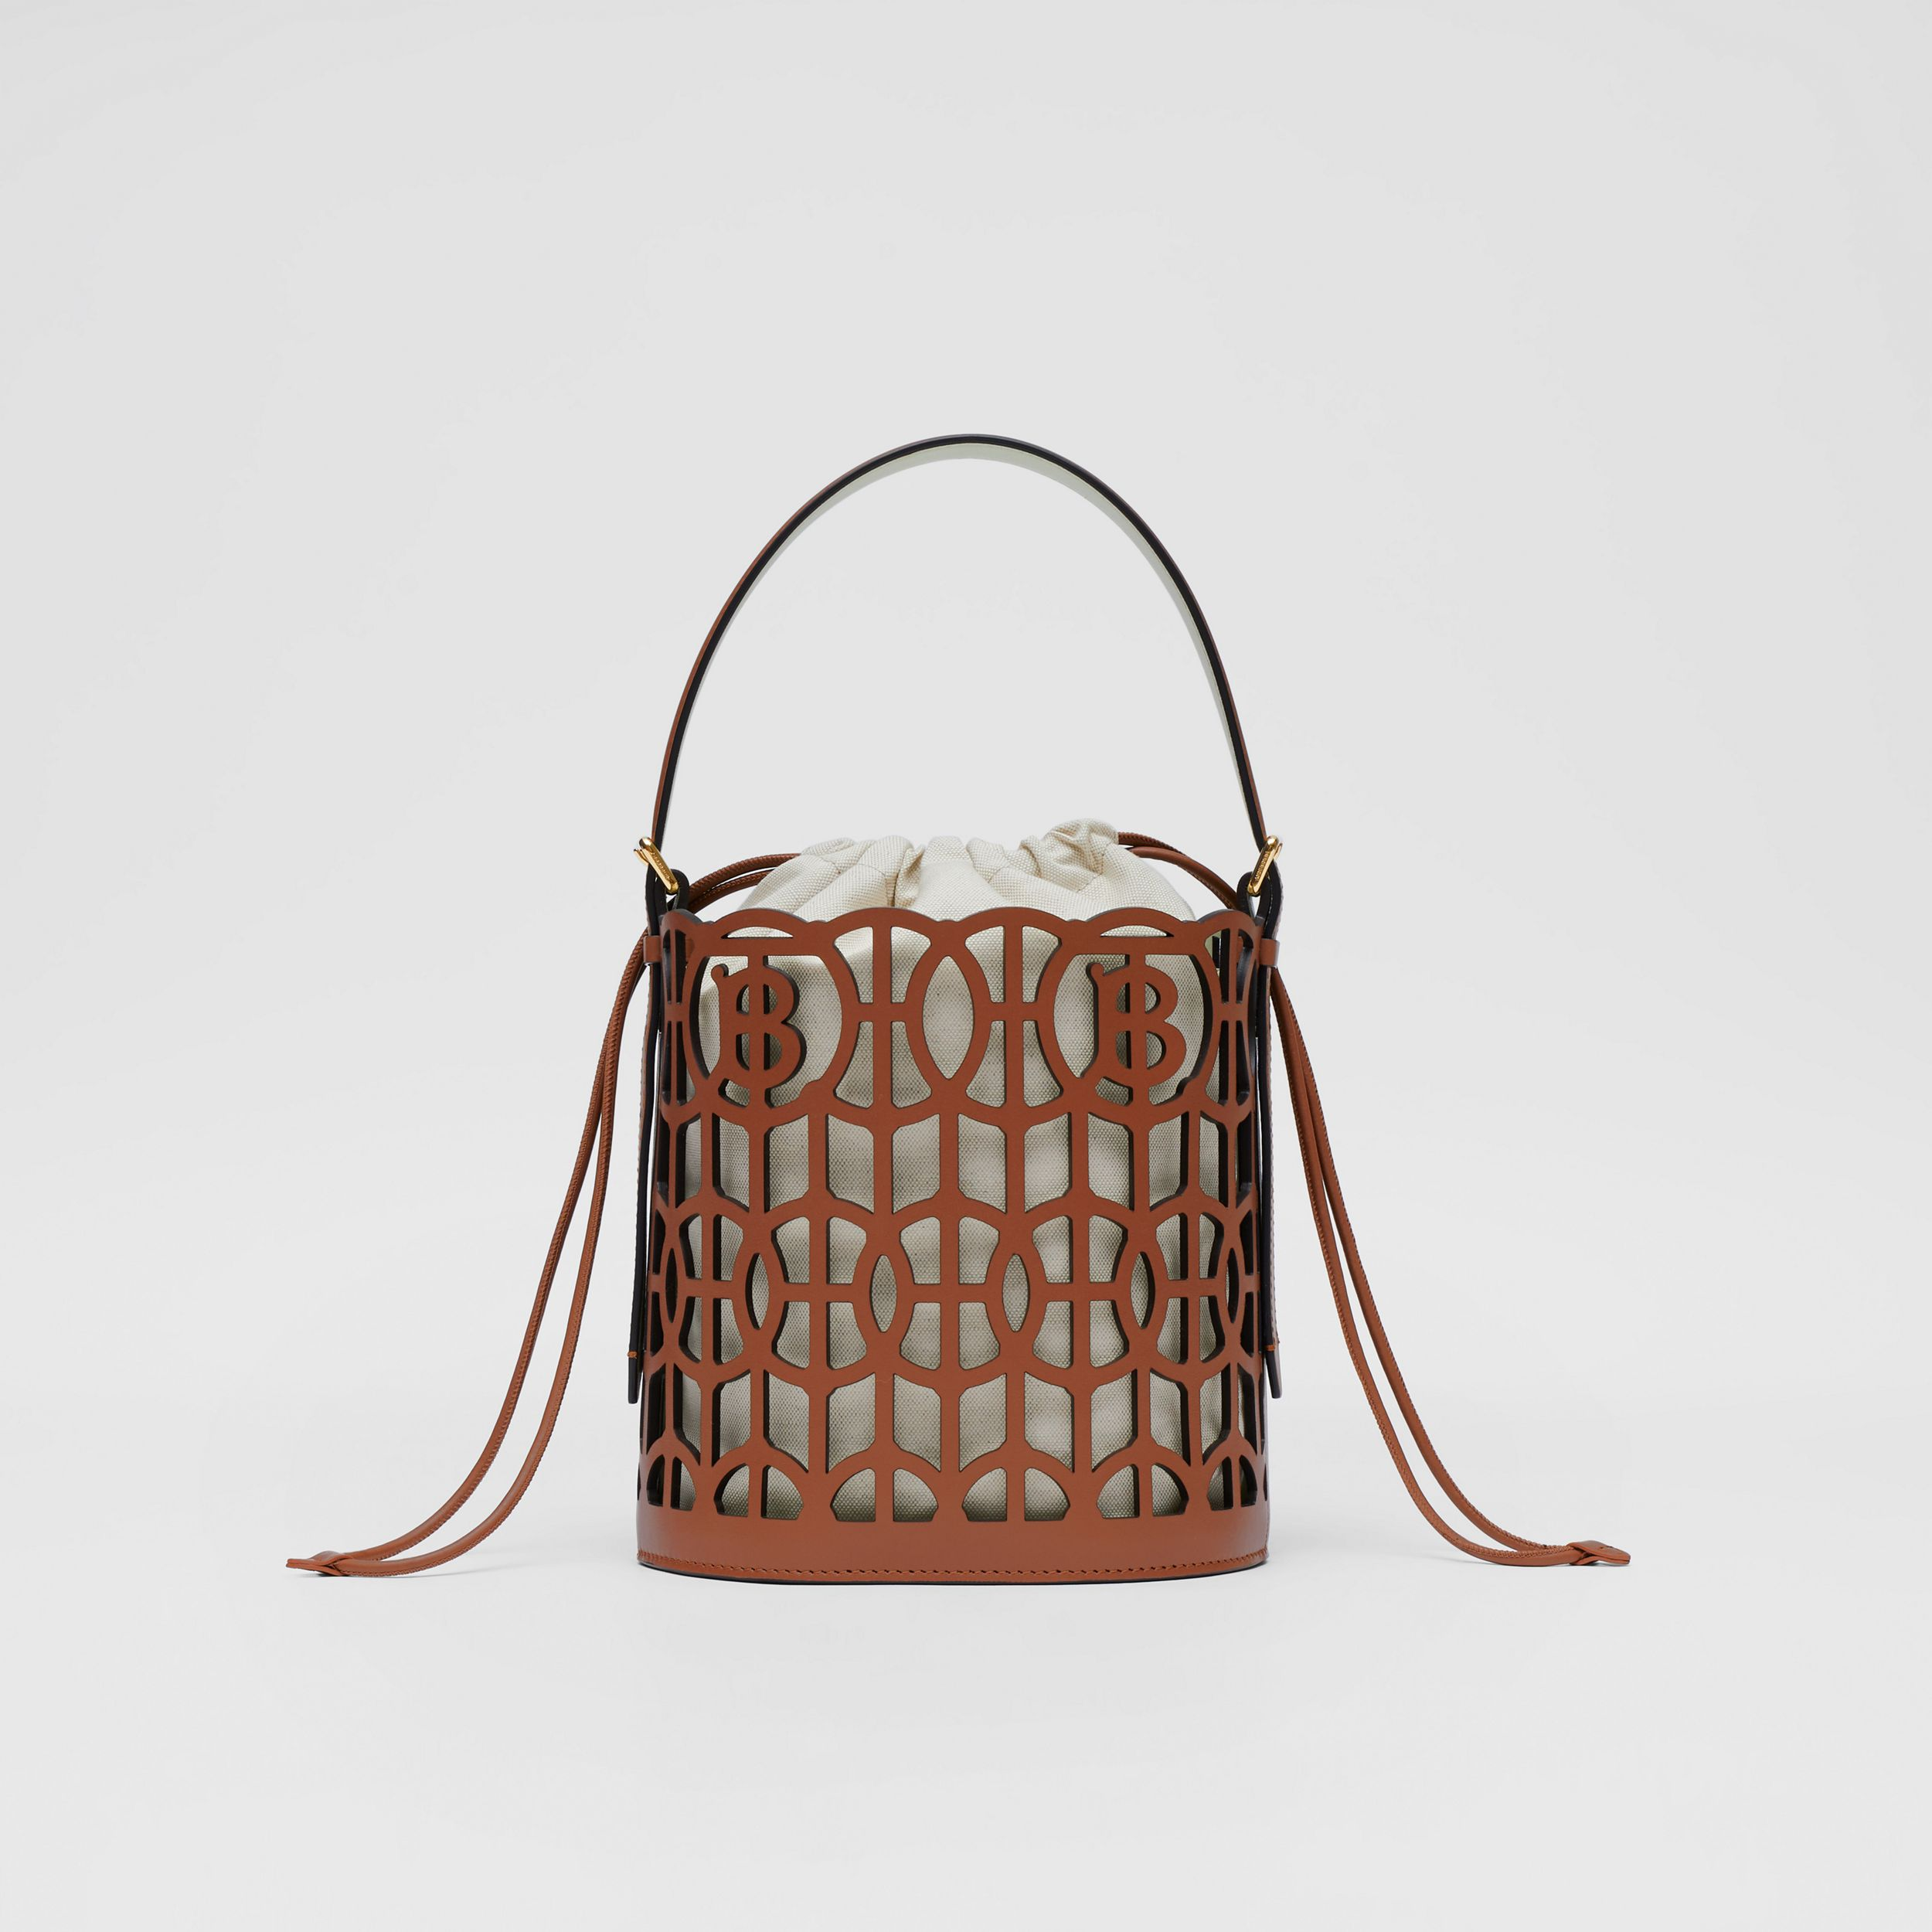 Leather Rose Bucket Bag in Tan - Women | Burberry - 1